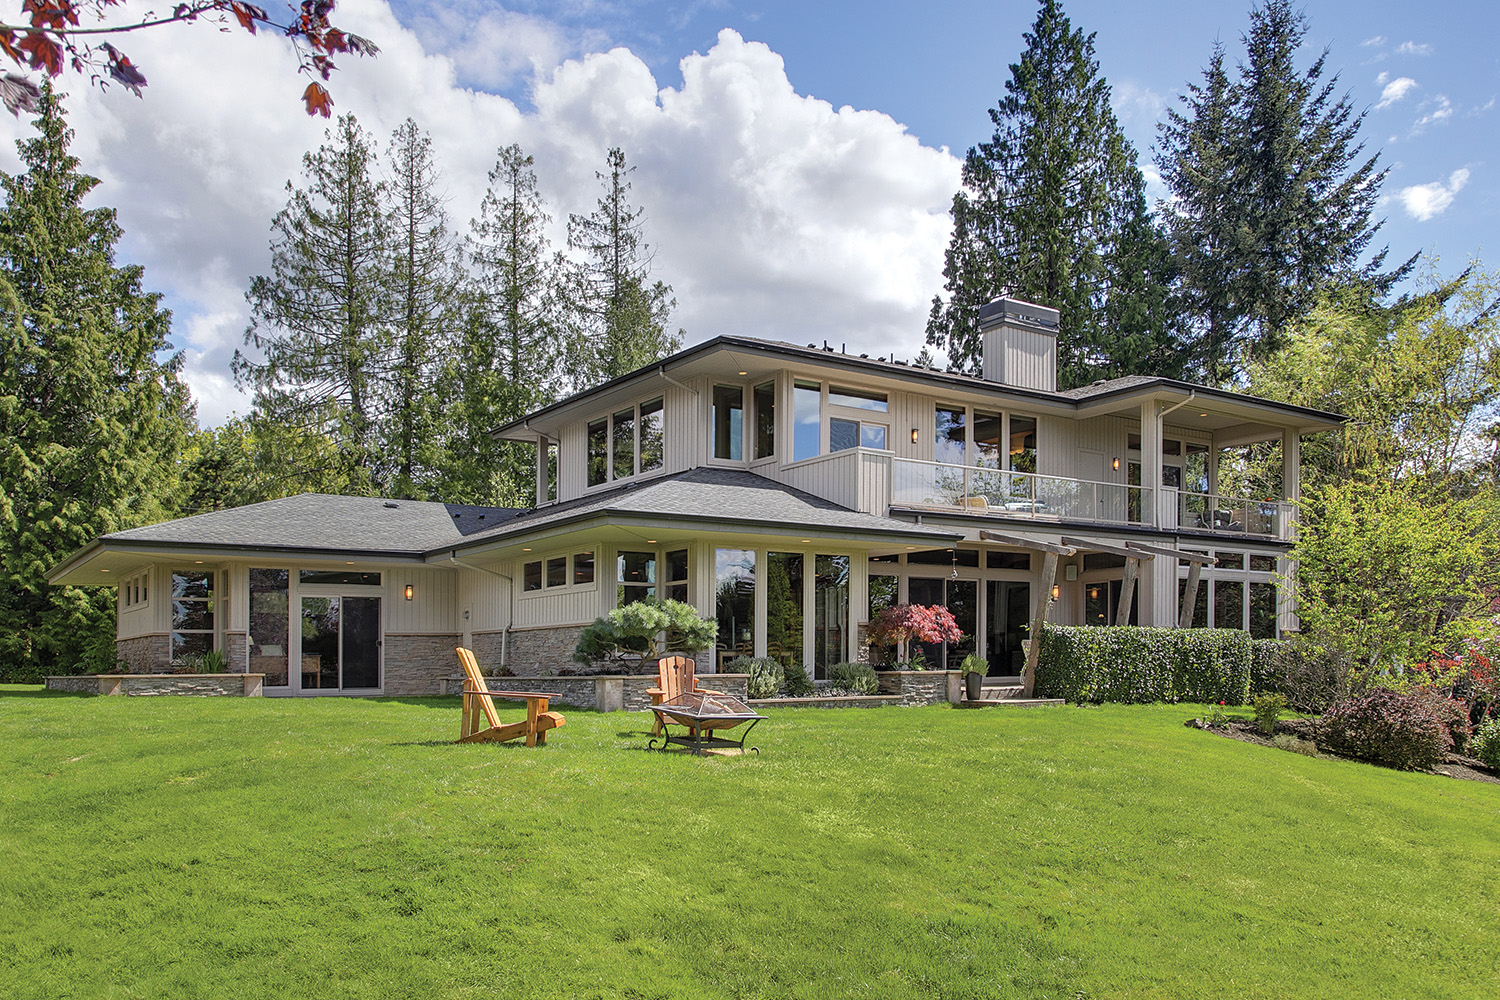 2619 200th Ave SE, Sammamish, listed with Jay Kipp for $1,878,000